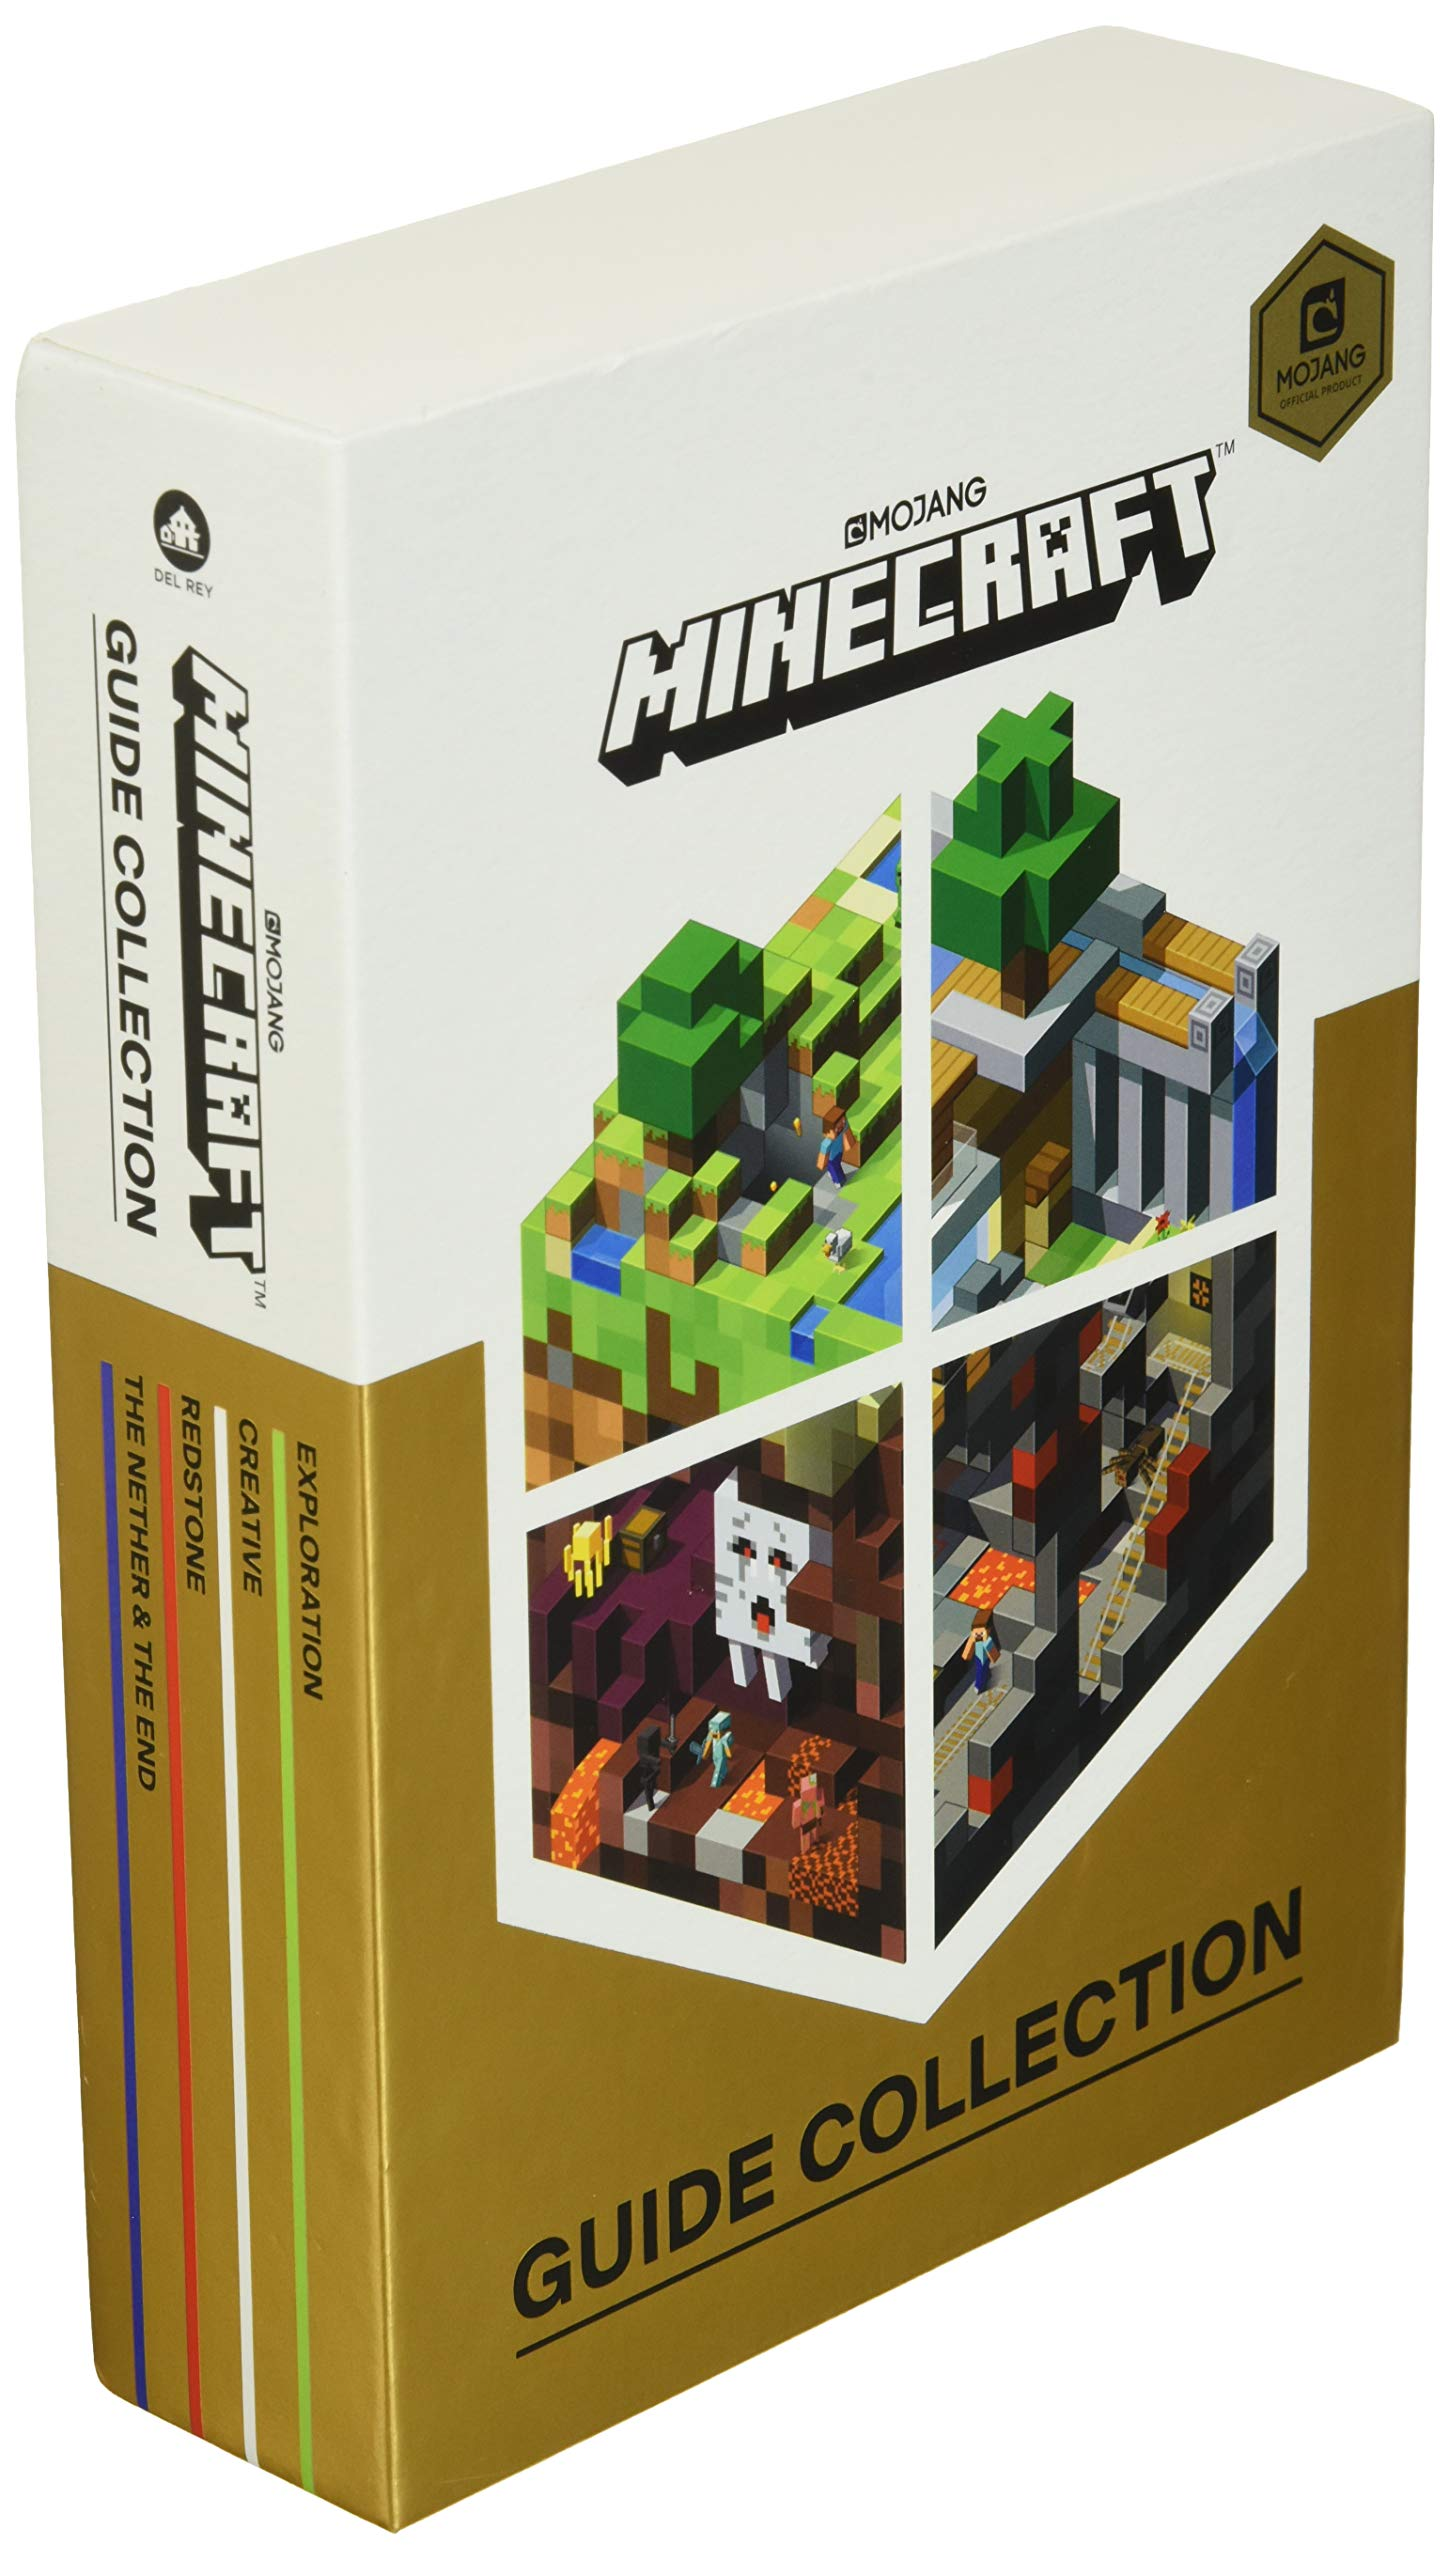 Minecraft: Guide Collection 10-Book Boxed Set: Exploration